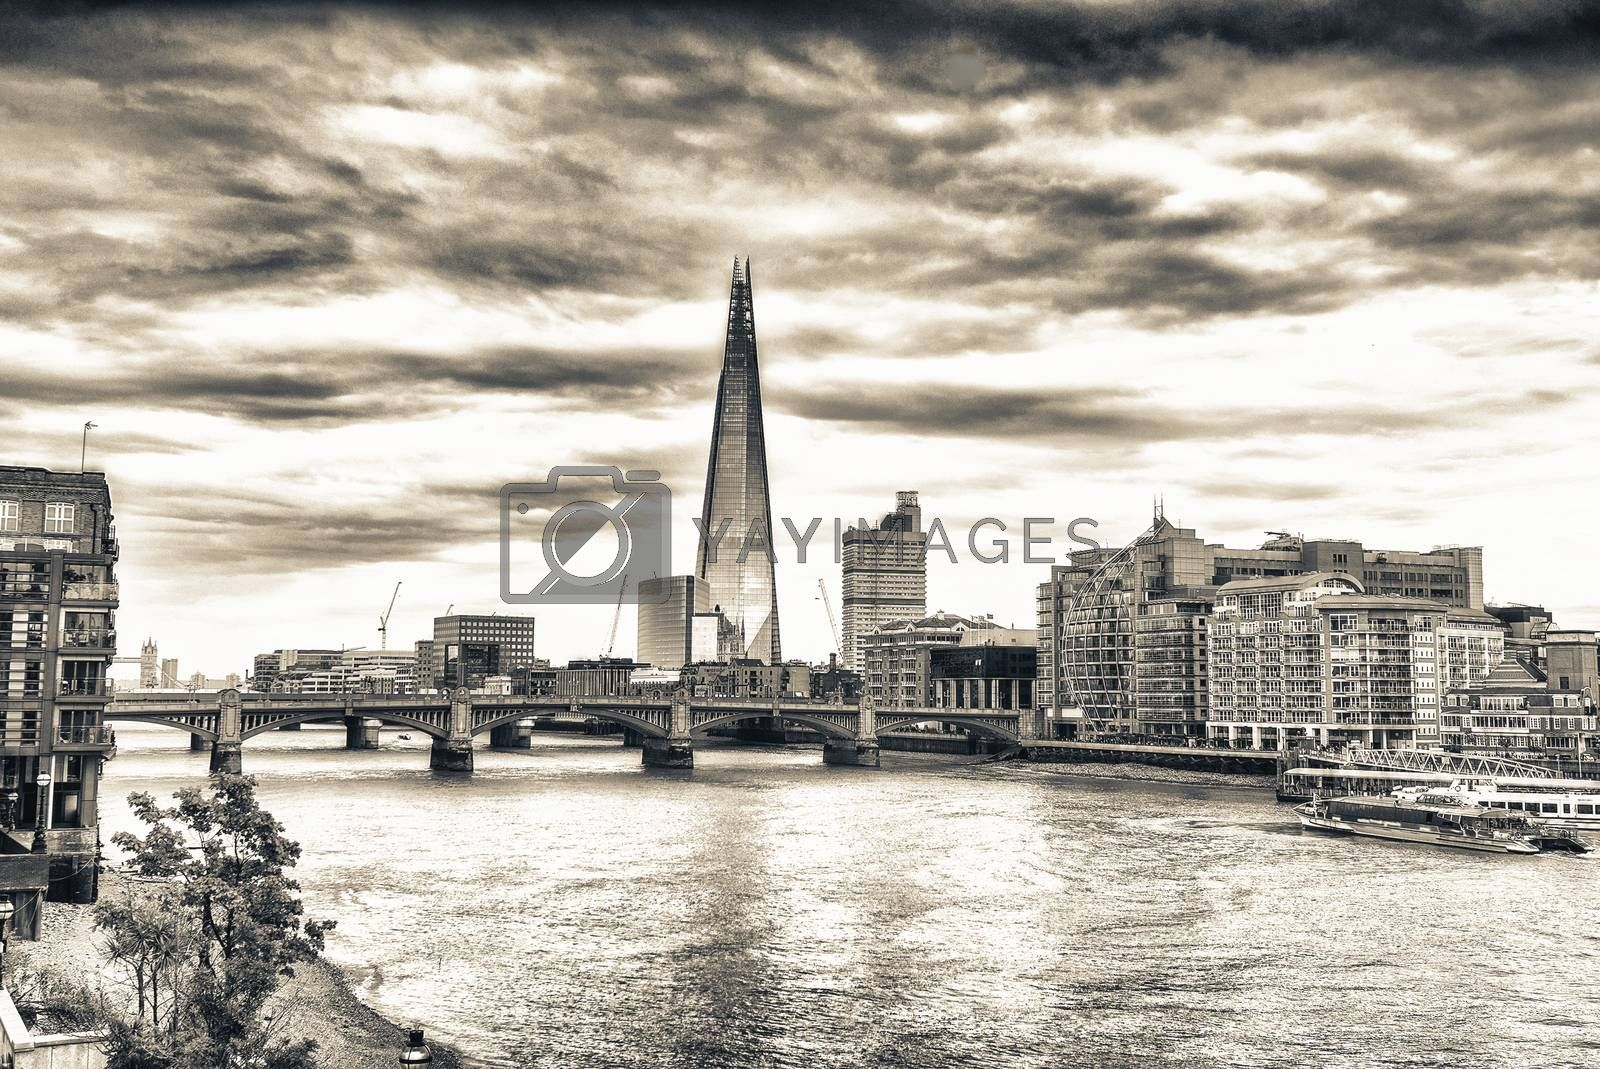 London skyline and Thames river on a cloudy day.